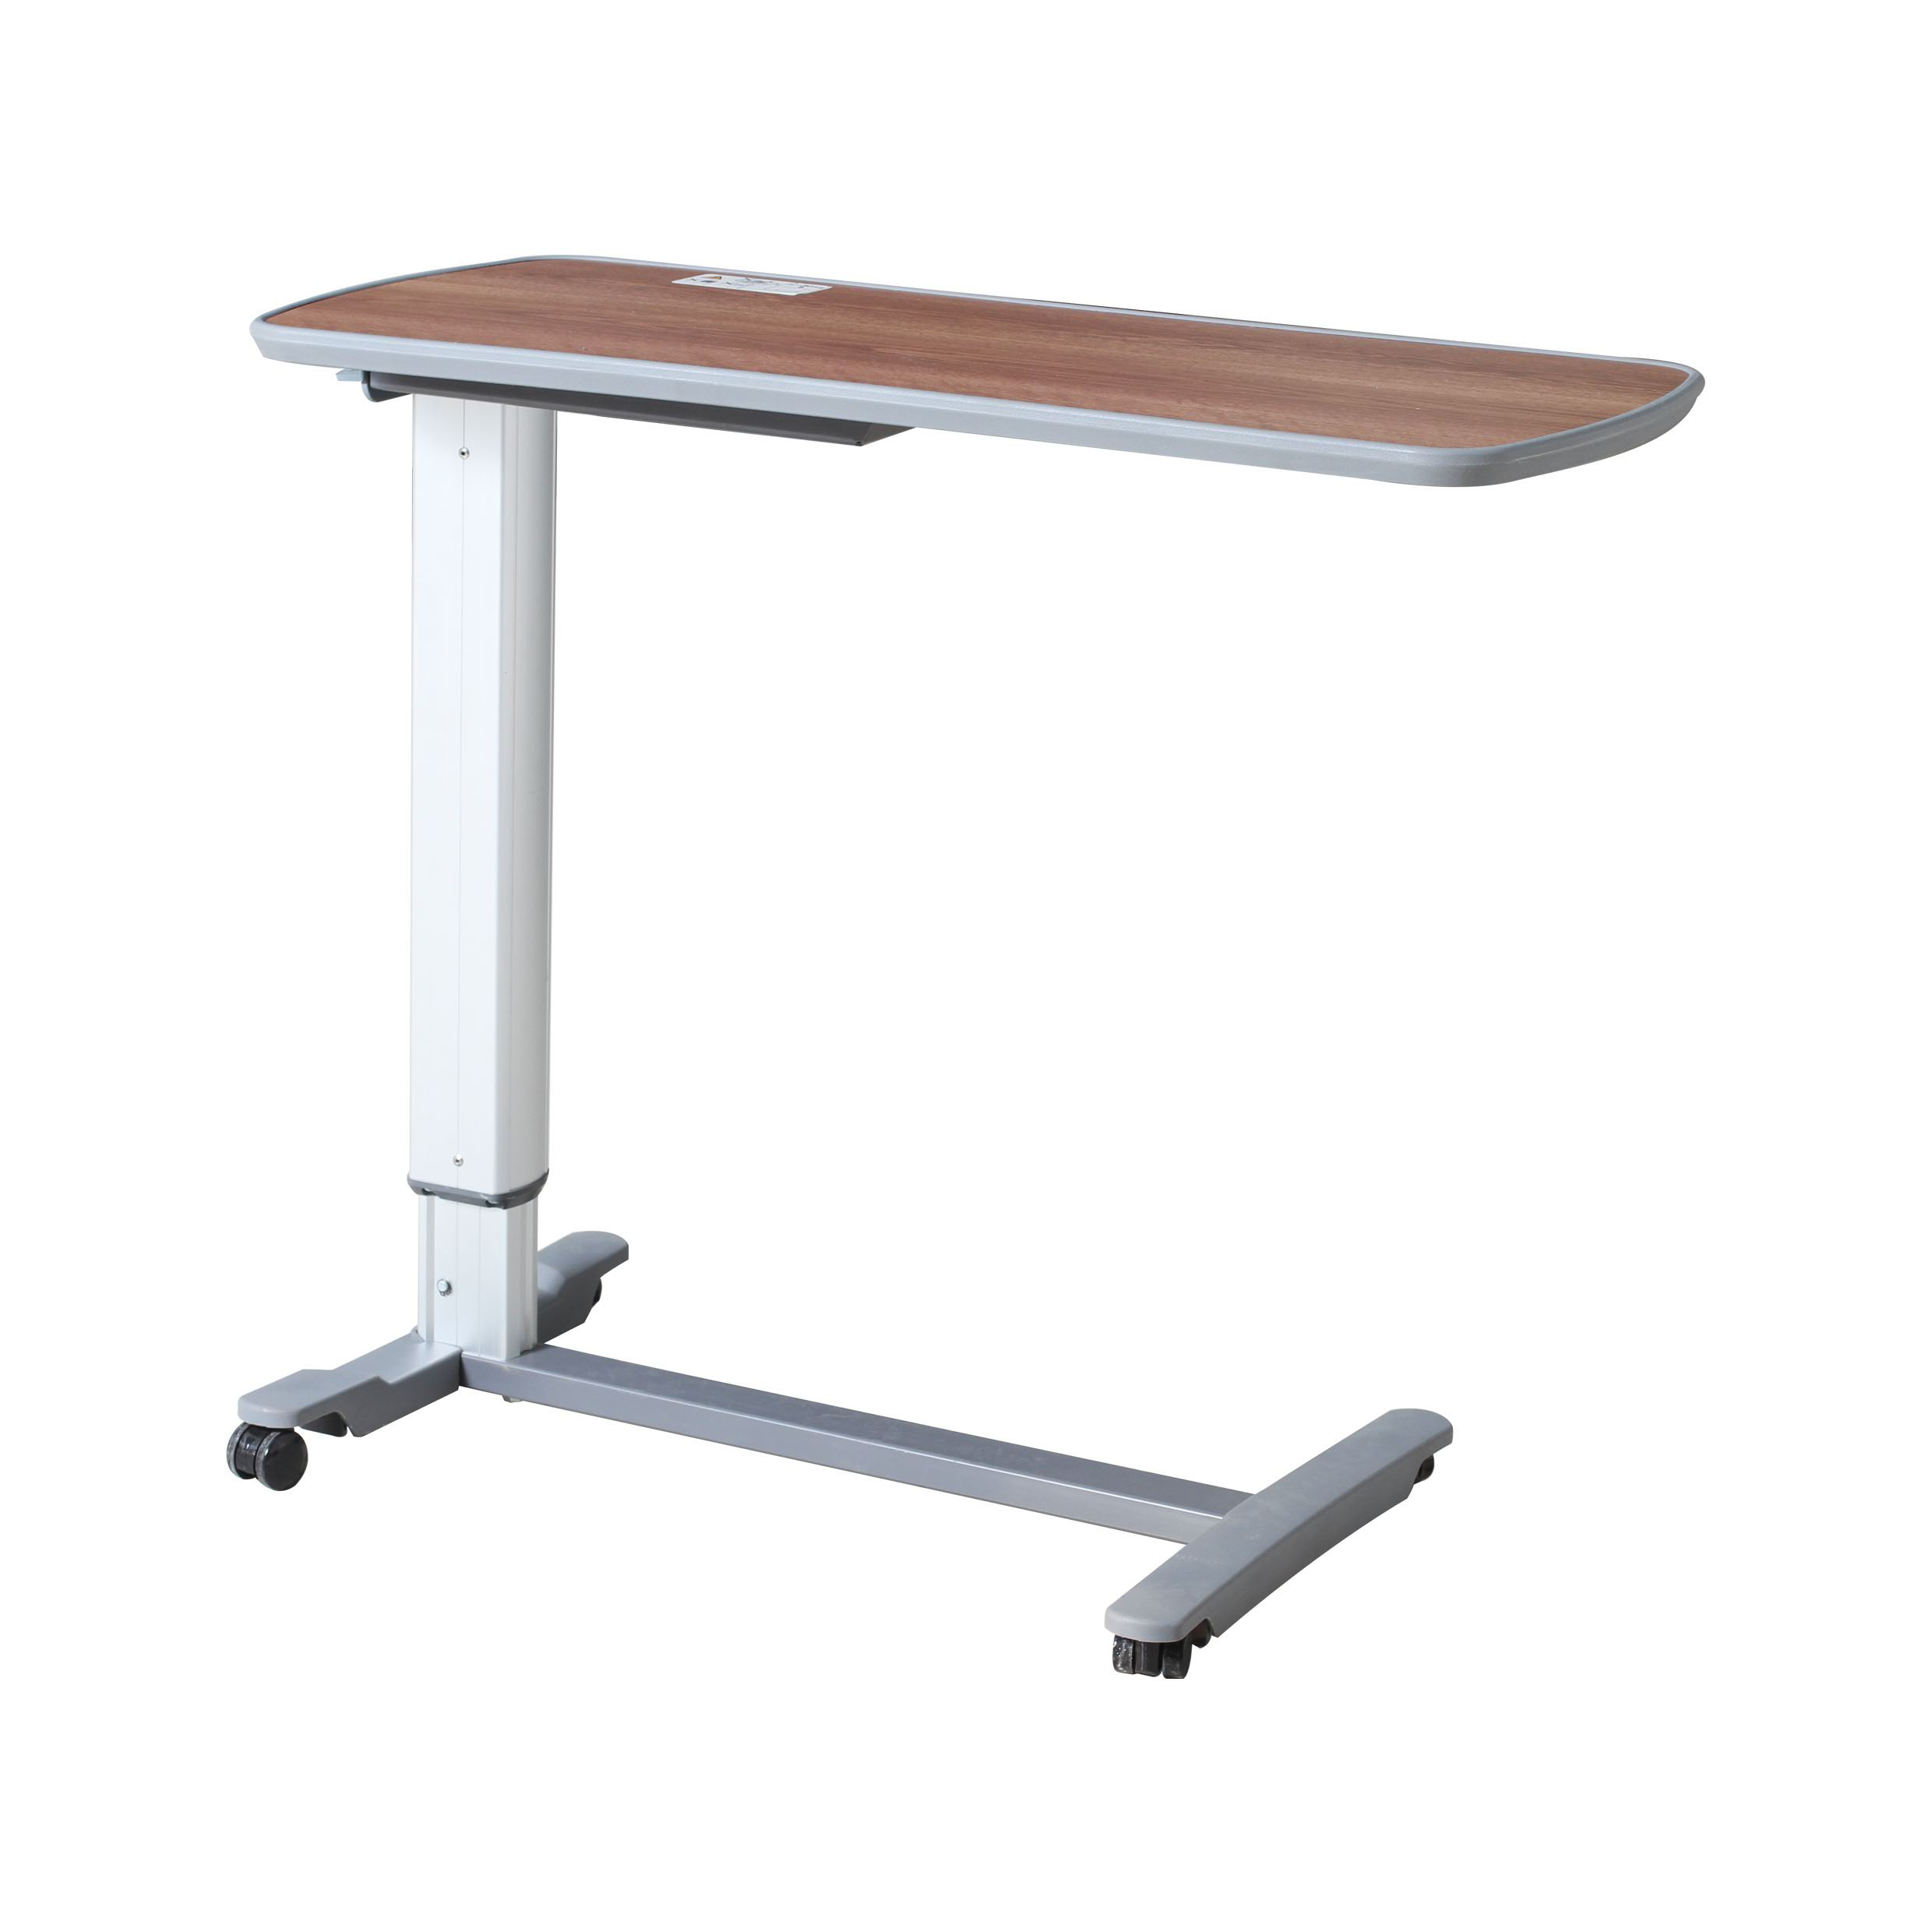 IVY-Z02 Cheap Price Luxury Hospital <strong>Medical</strong> Dining <strong>Table</strong> For Patient